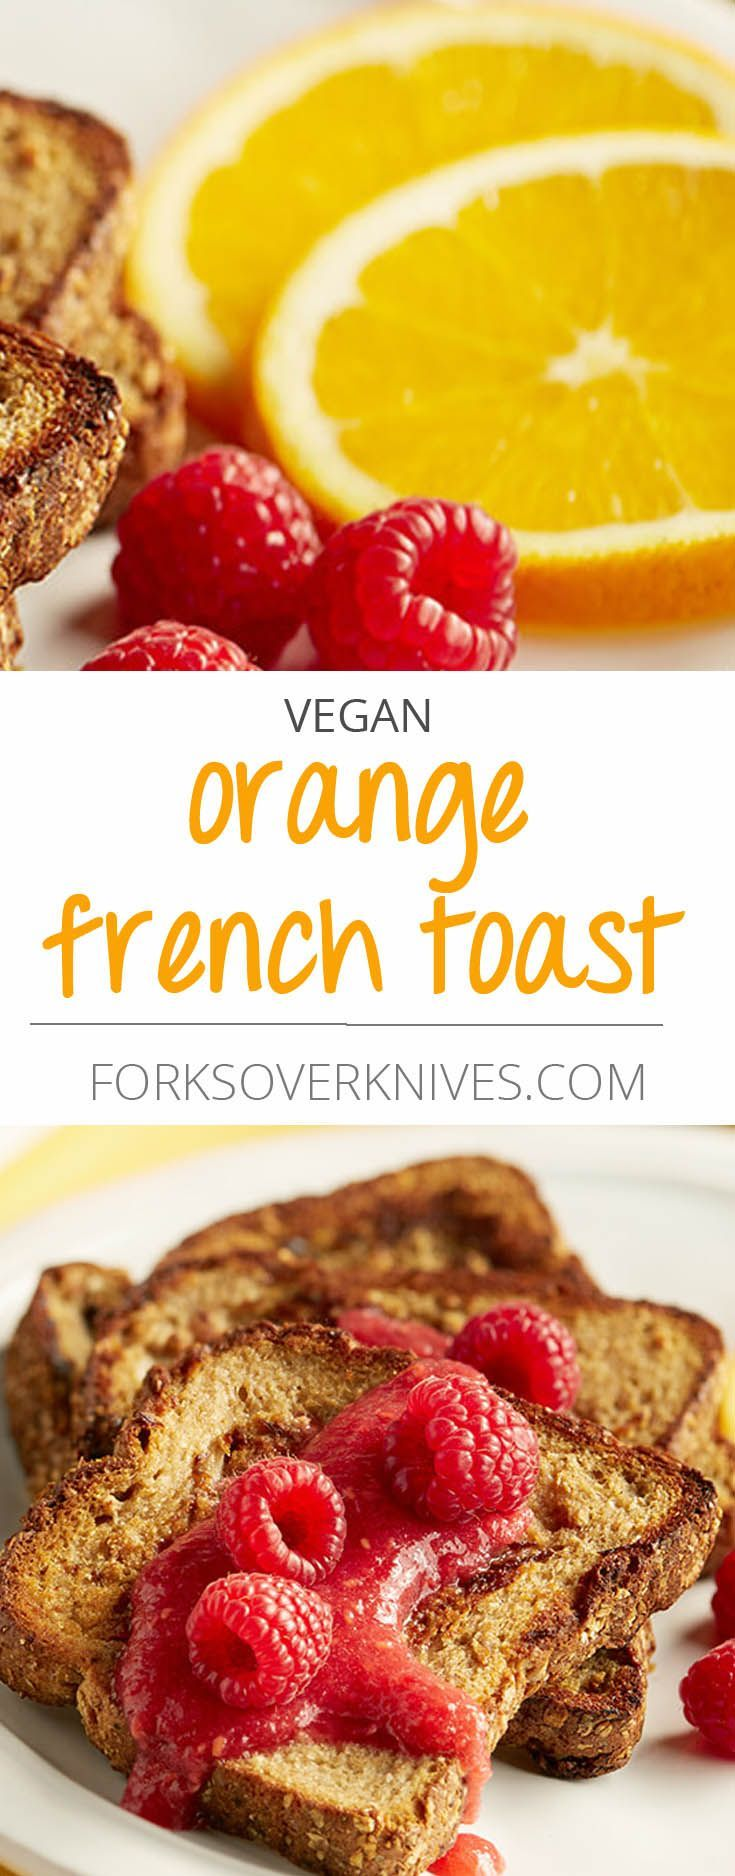 Aquafaba helps make this vegan French toast soft, thick, and eggy. Use your favorite bread or berries to create your own signature version. Aquafaba is the liquid that comes from soaking or cooking beans or legumes—it's the thick liquid you...  Read more